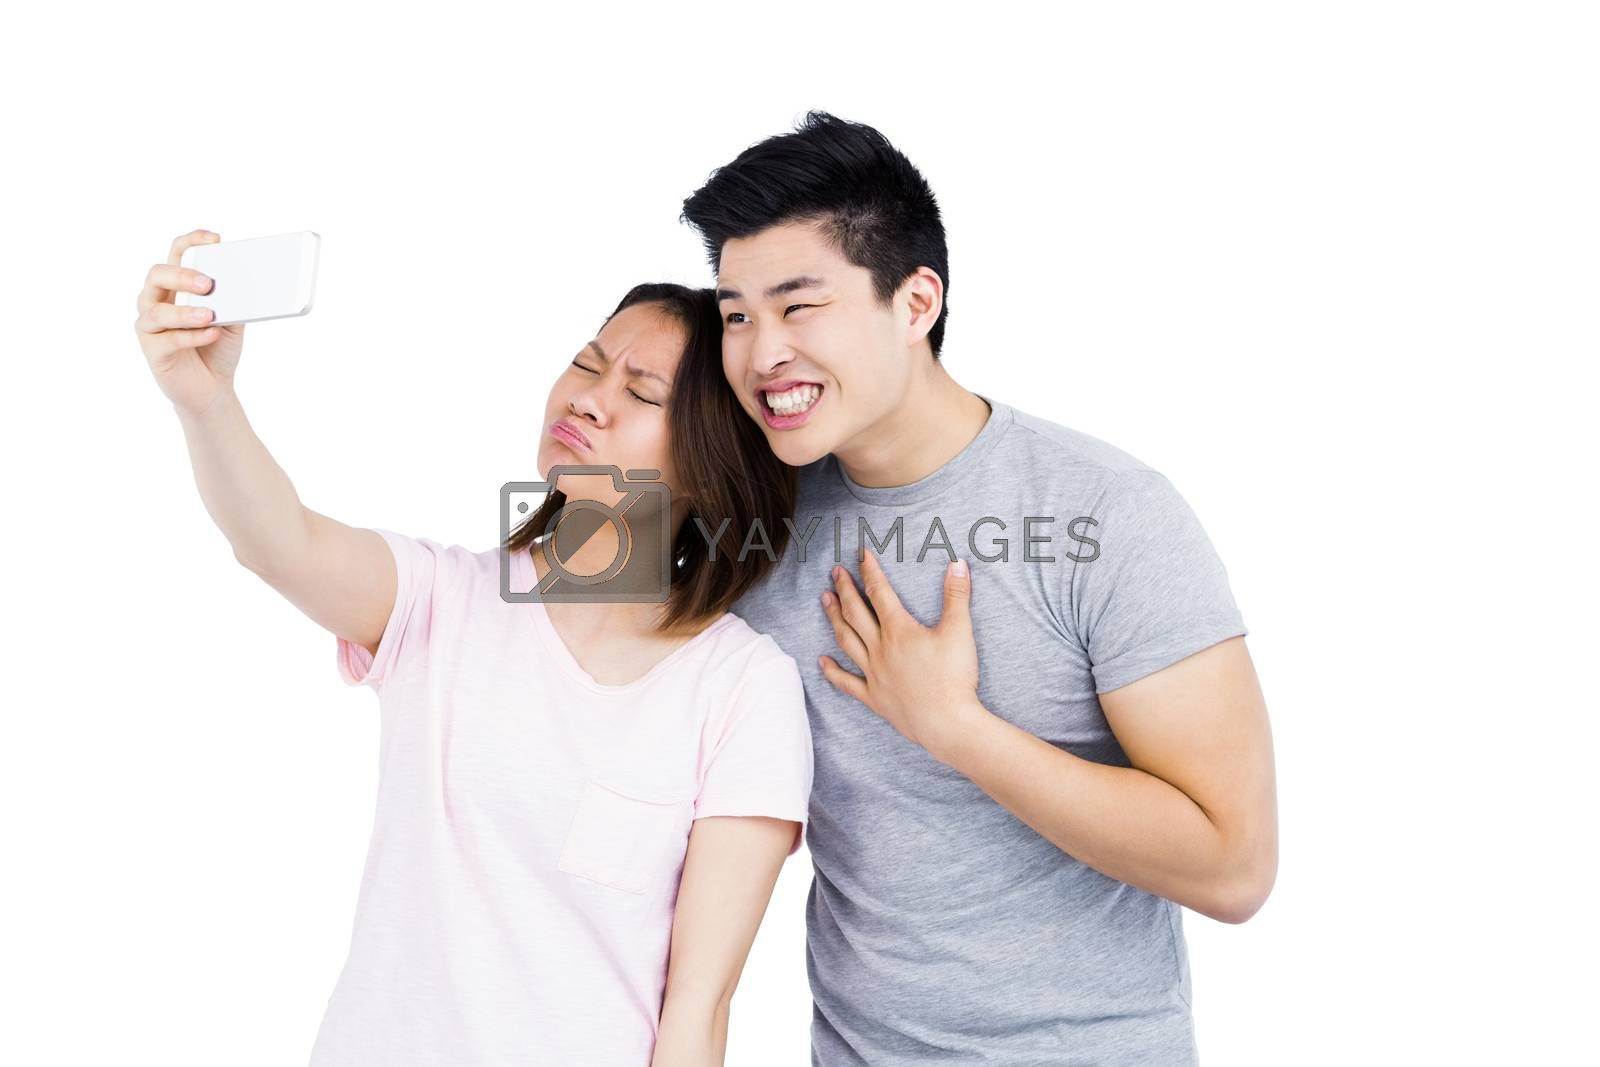 Young couple taking a selfie on smartphone on white background